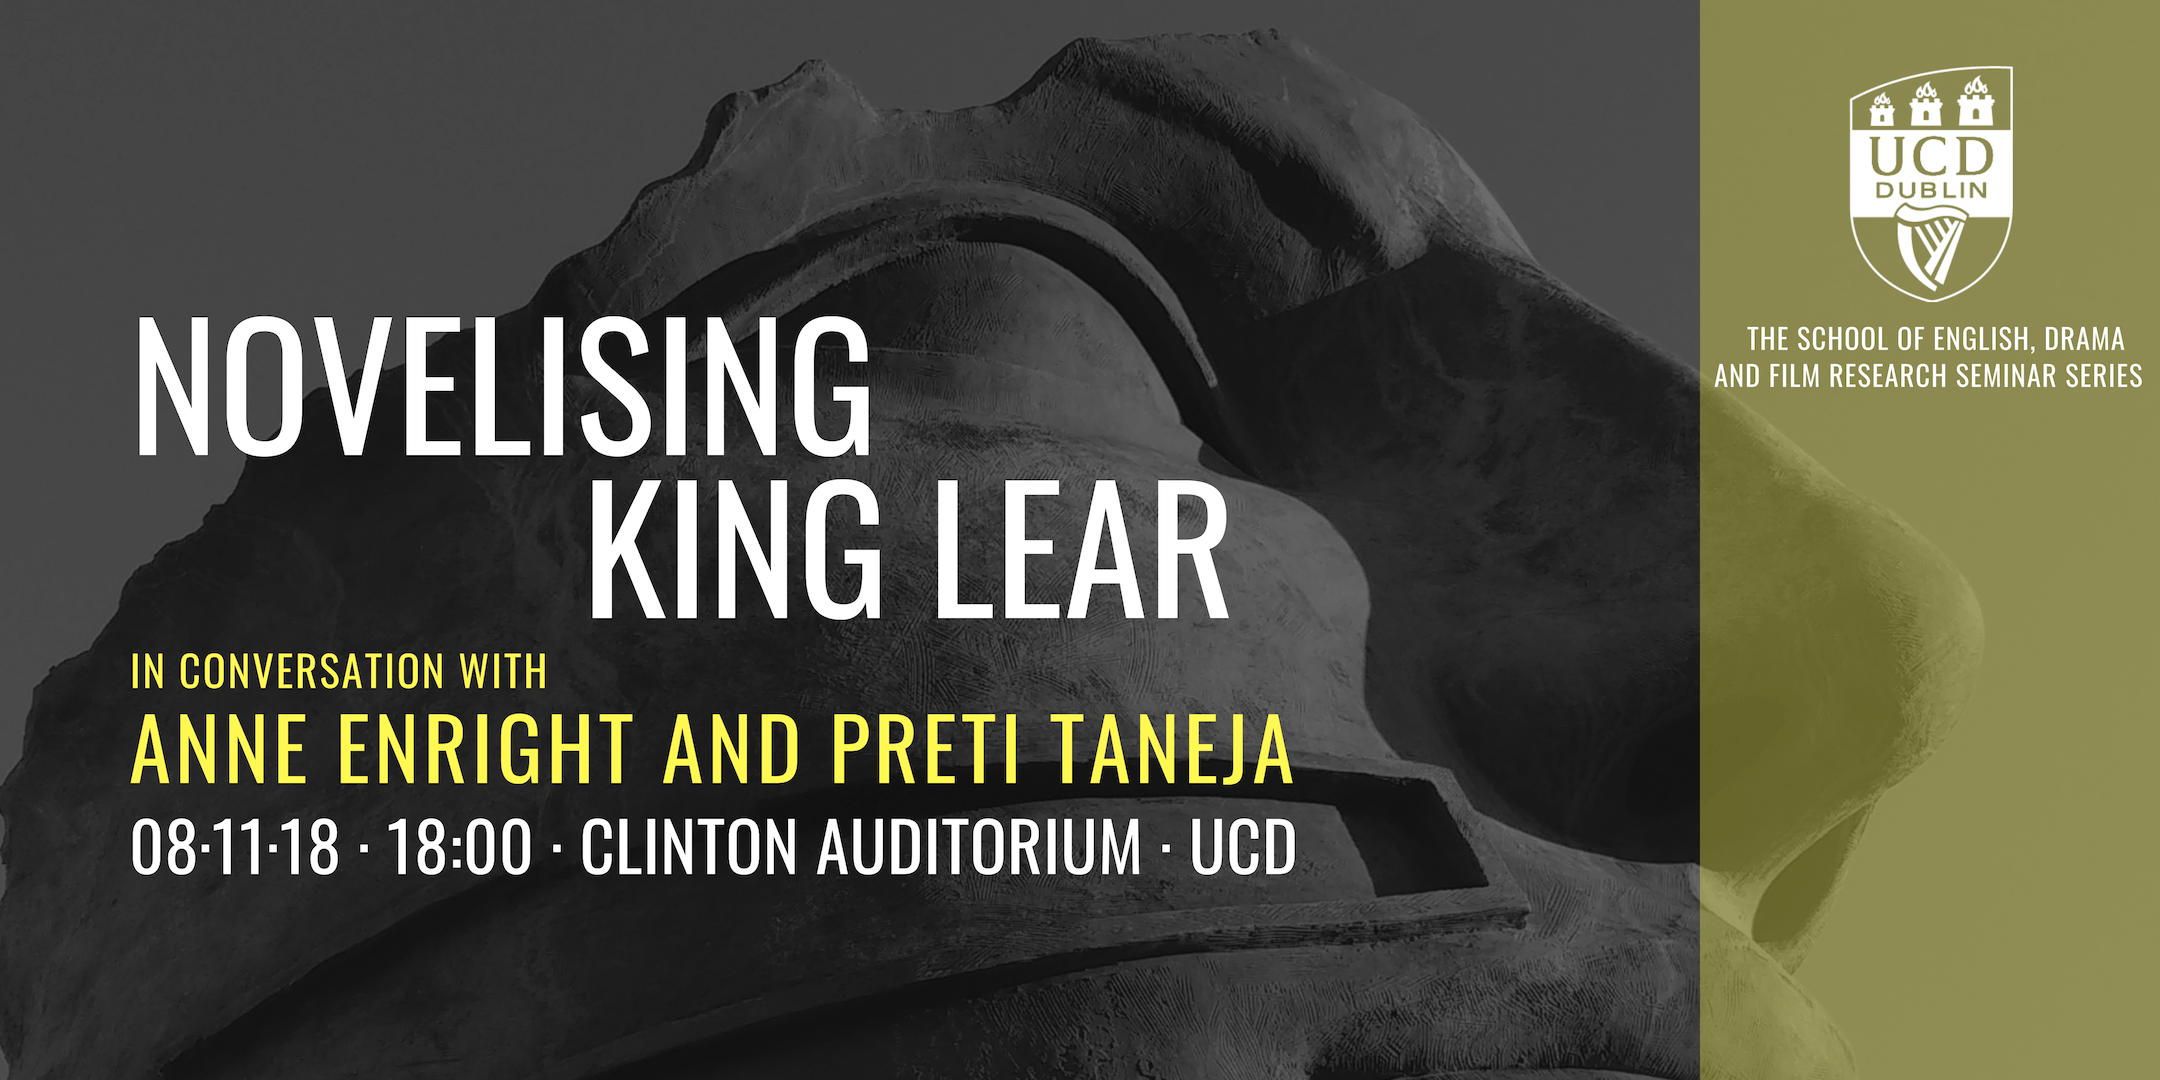 Novelising King Lear: In Conversation With Anne Enright and Preti Taneja